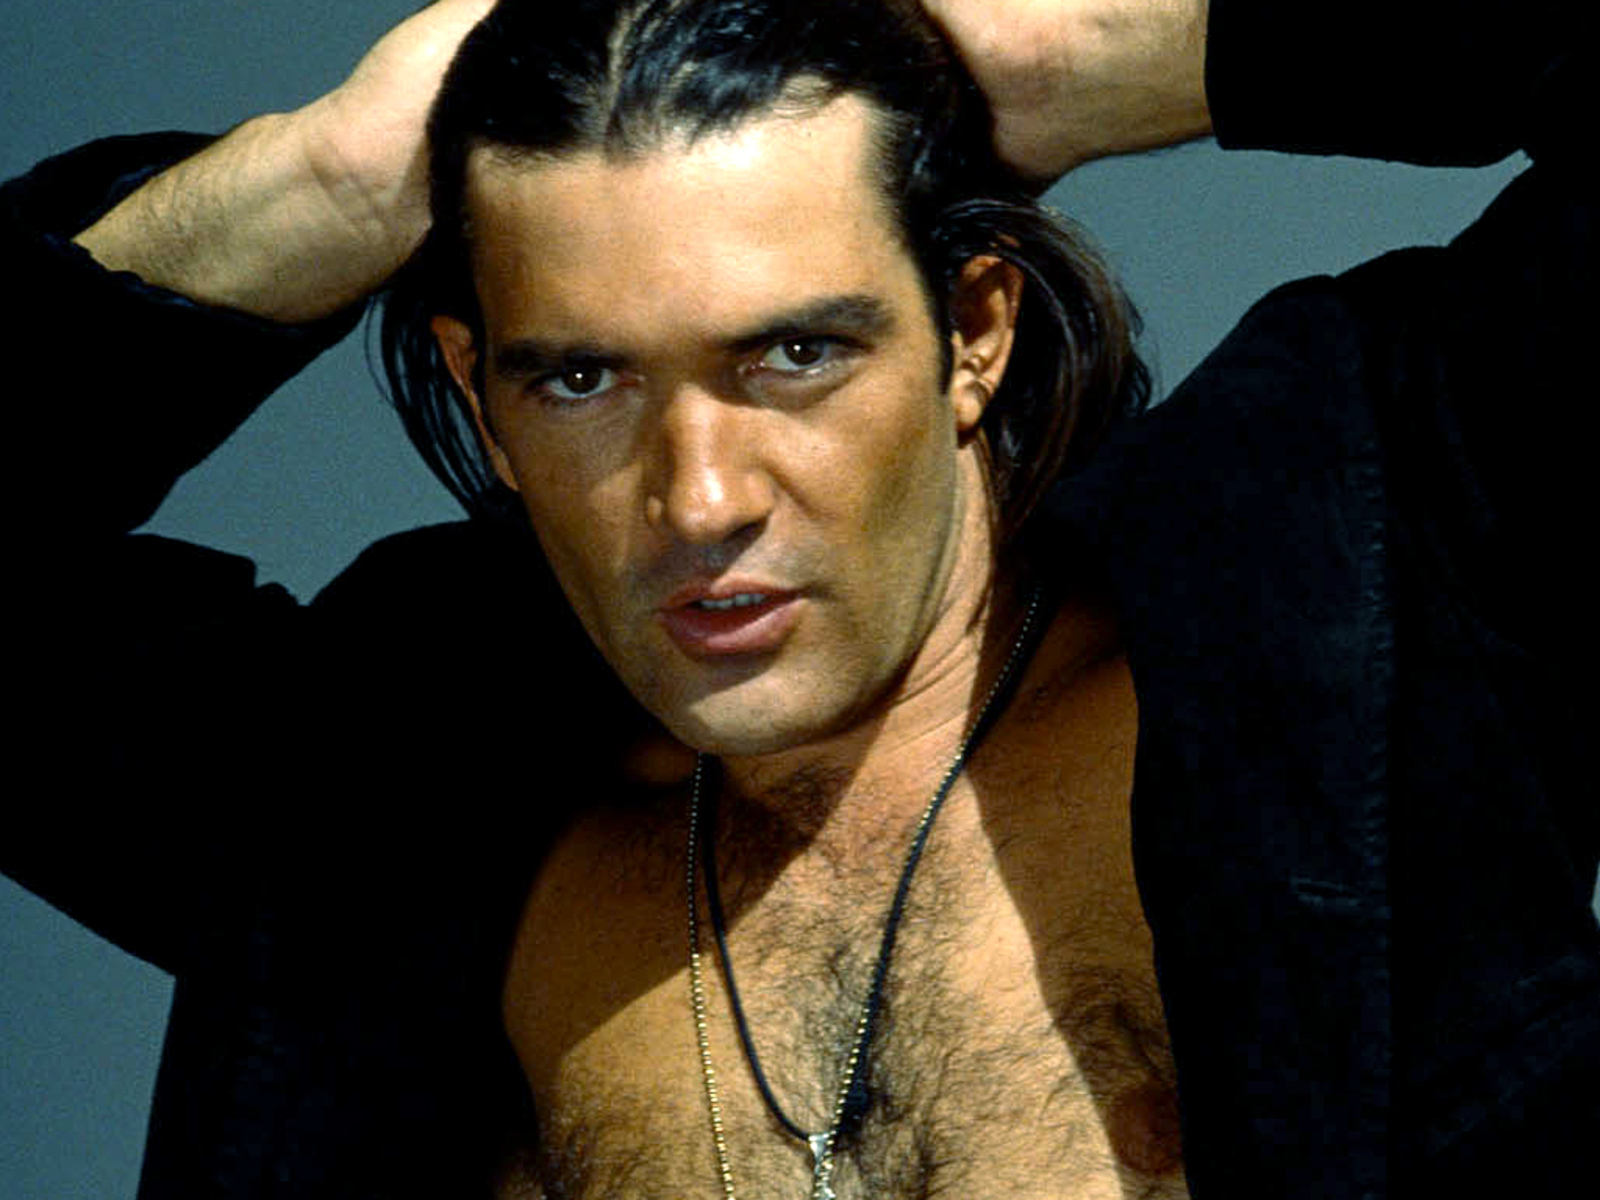 Antonio Banderas On Relationship with Girlfriend Nicole Kimpel: 'We Are Pretty Much In Love'